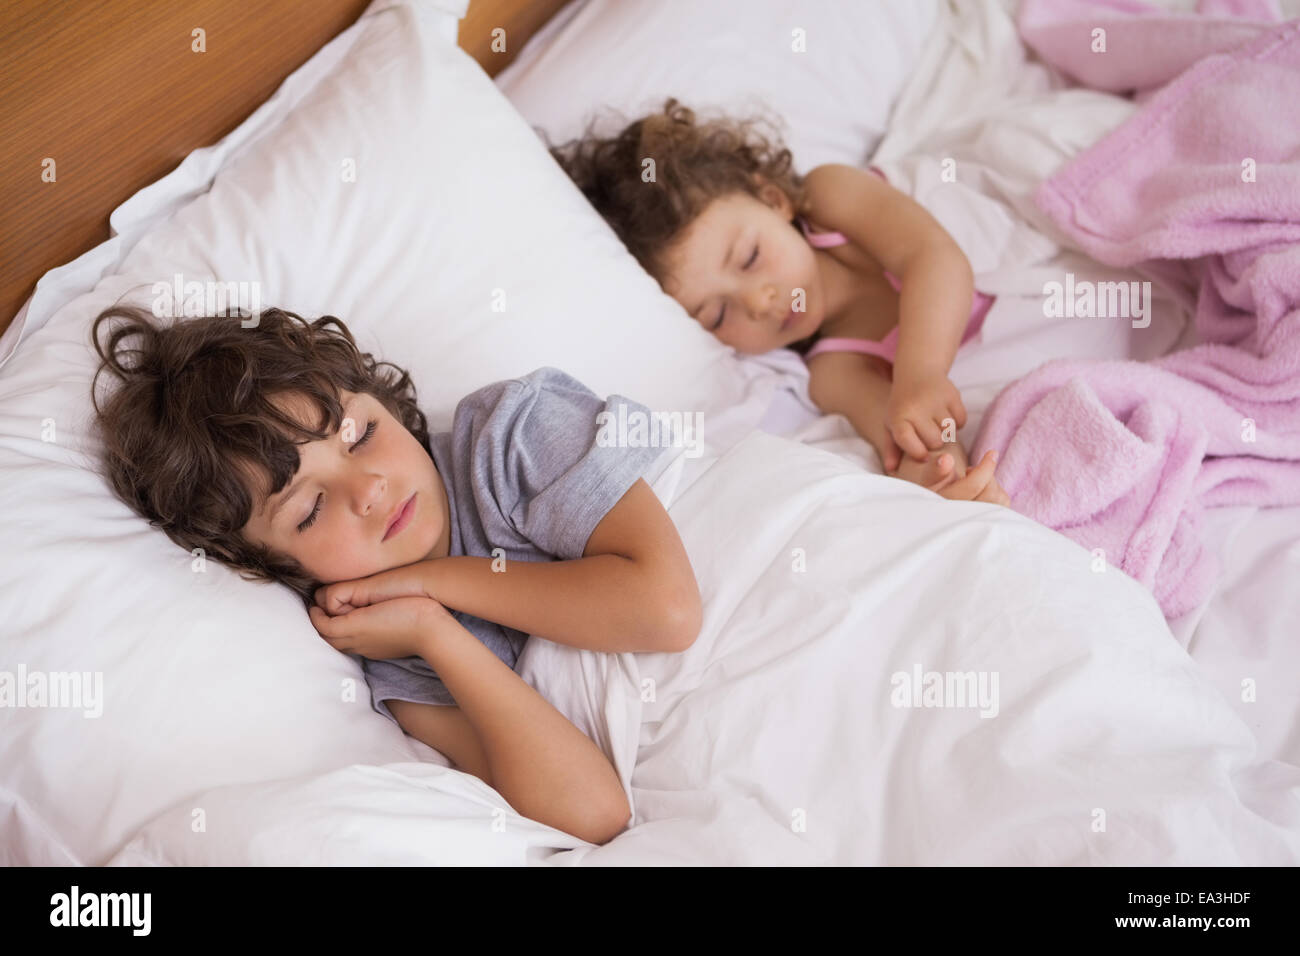 Young Girl And Boy Sleeping In Bed Stock Photo Royalty